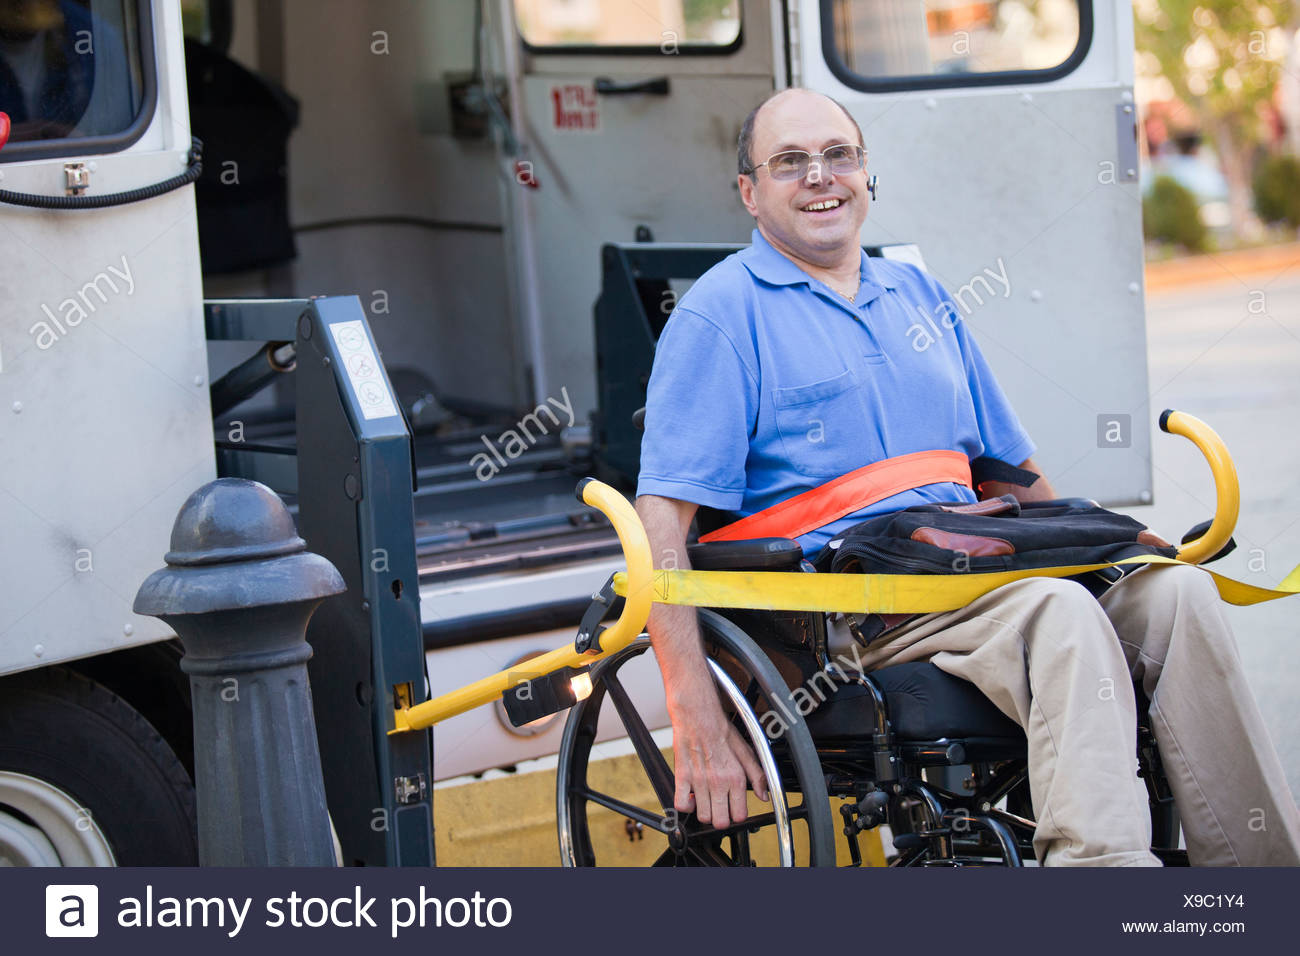 Man with Friedreich's Ataxia in a wheelchair entering accessible public transportation - Stock Image